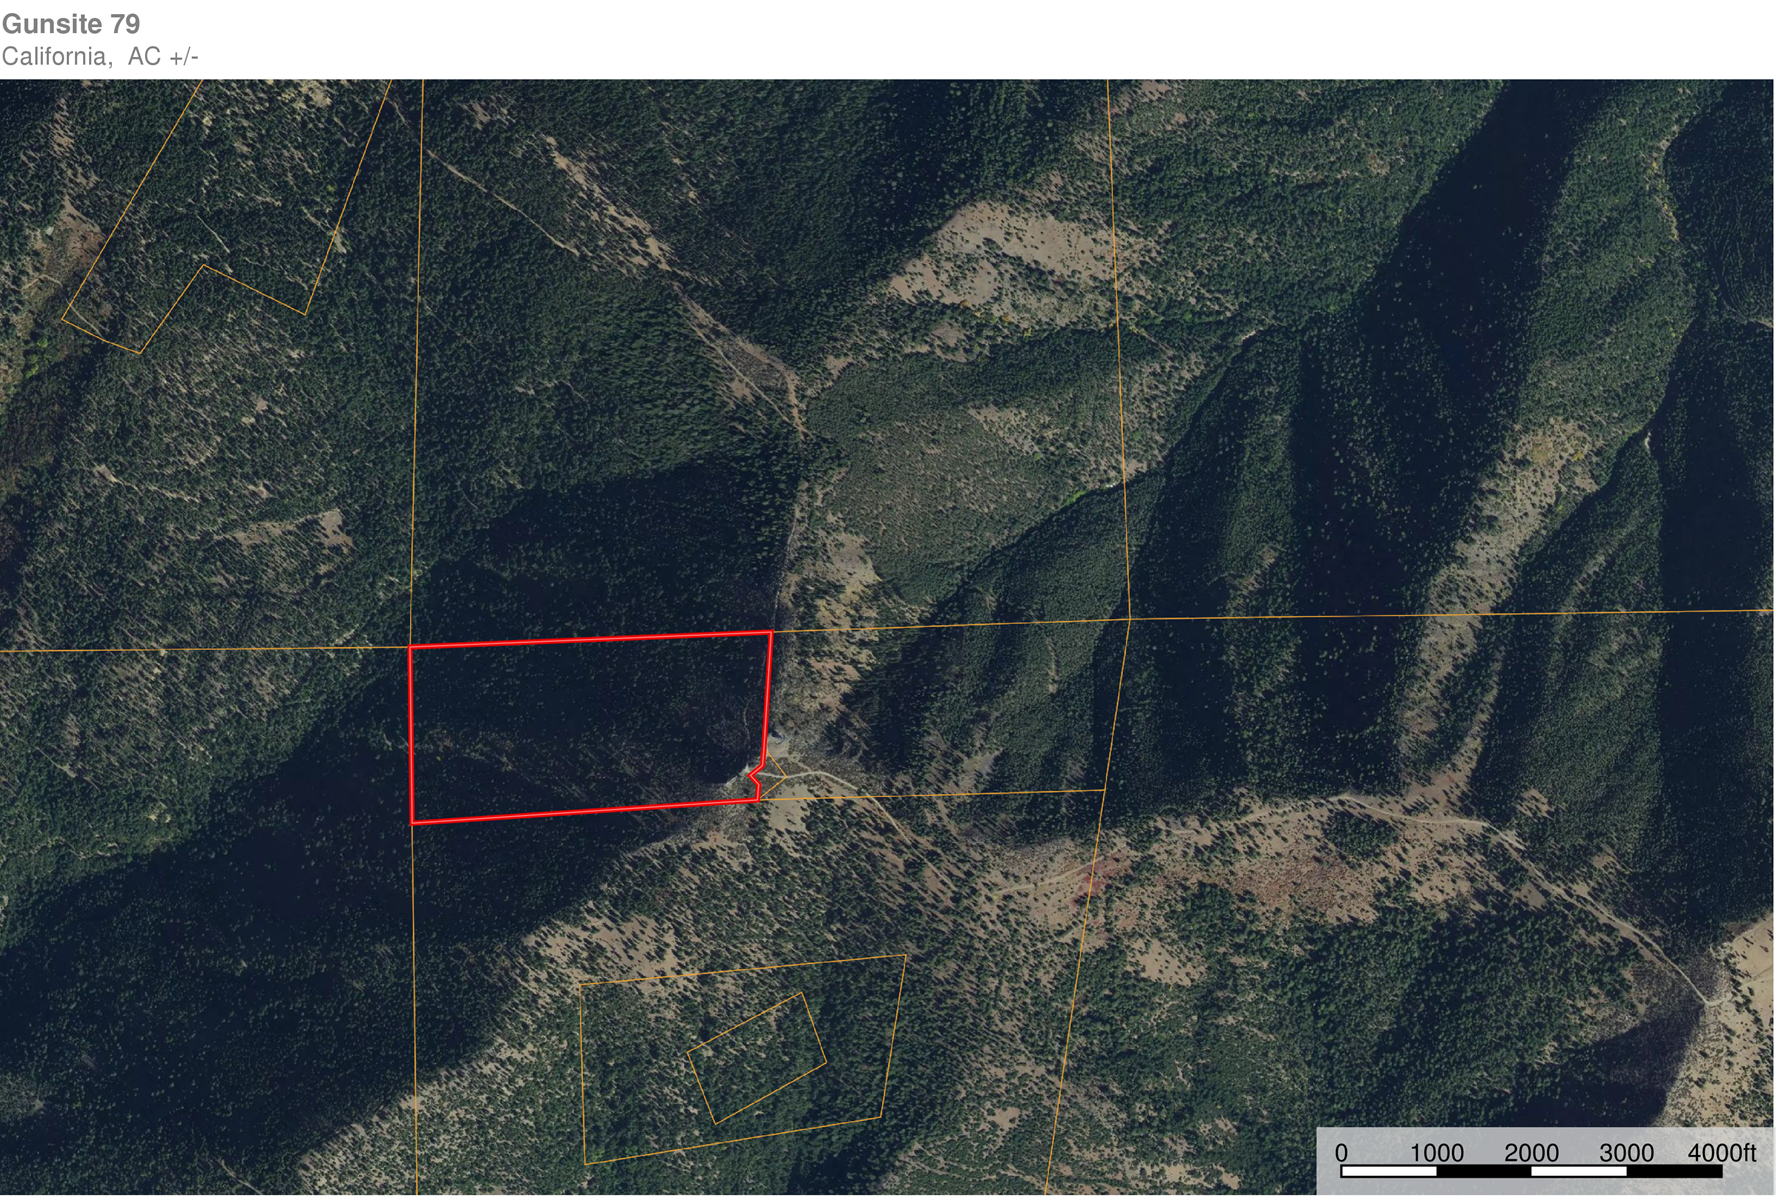 Land for Sale in Northern CA